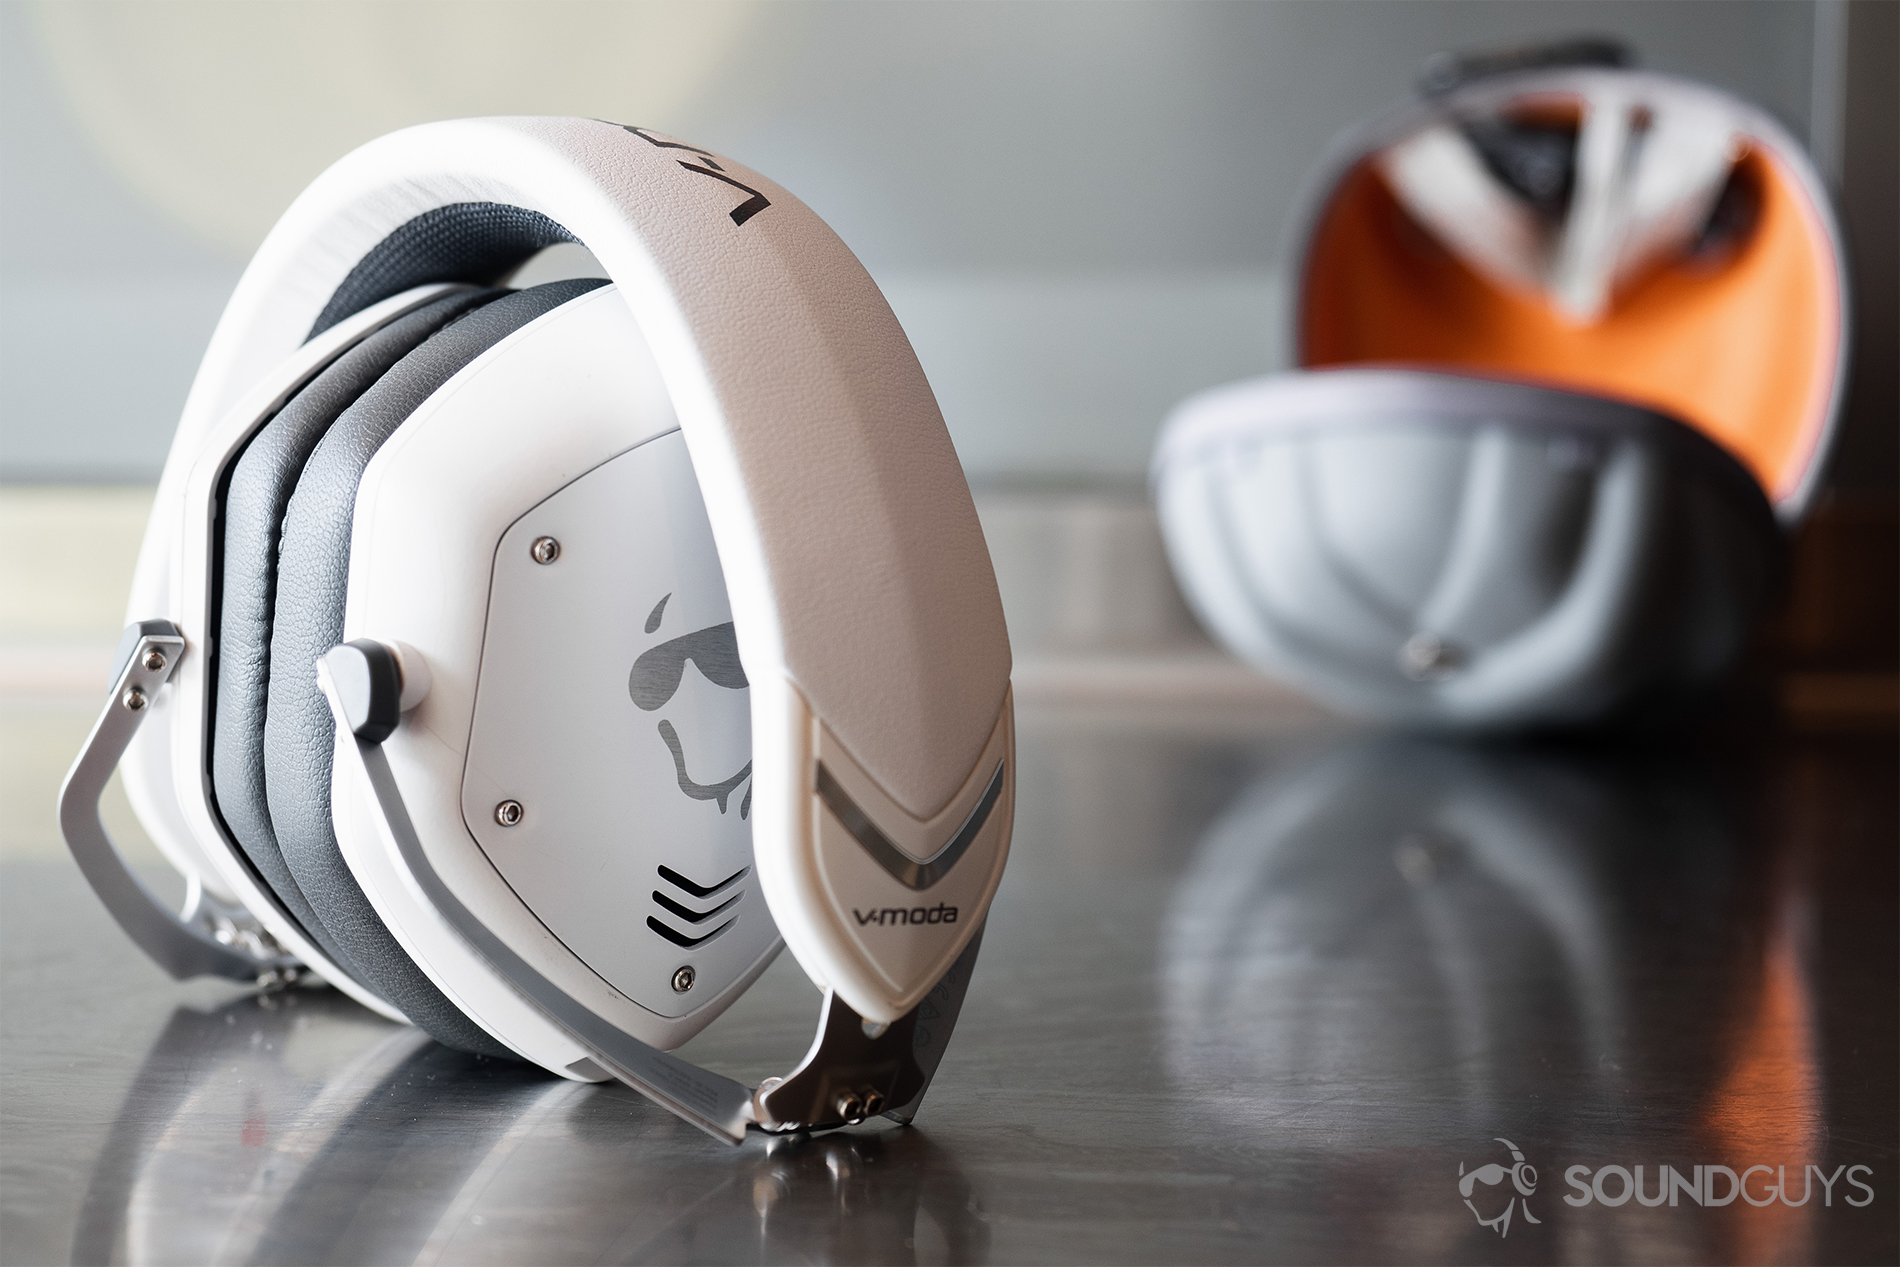 hight resolution of different driver types v moda crossfade 2 codex the headphones folded up but standing